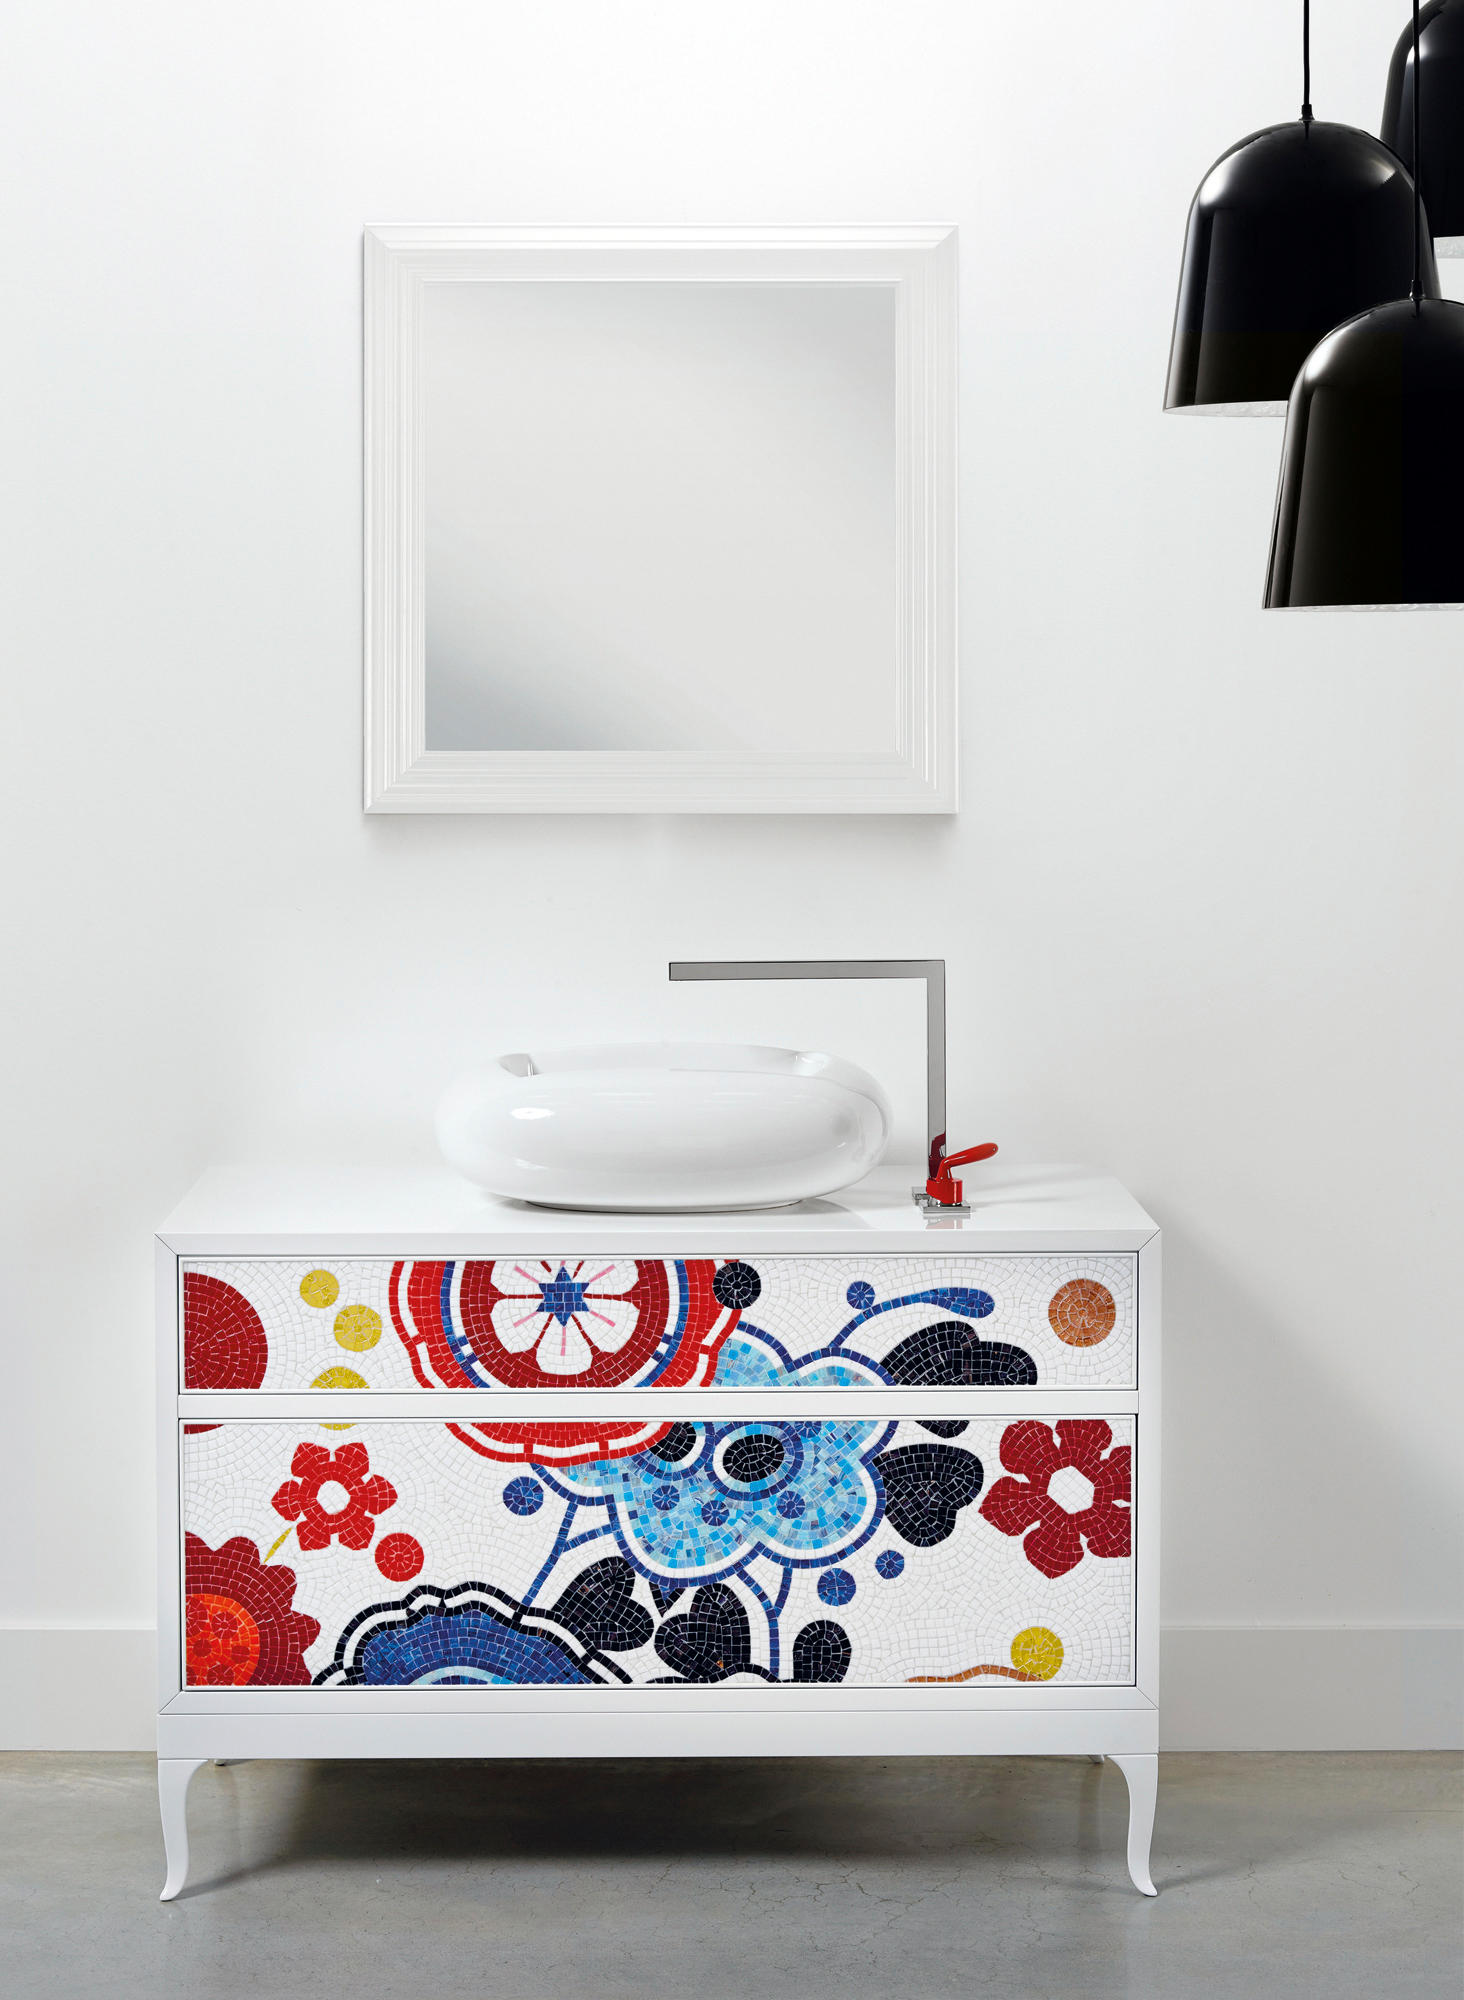 Meubles Quadro The Wanders Collection I Commode Quadro Meubles Sous Lavabo De